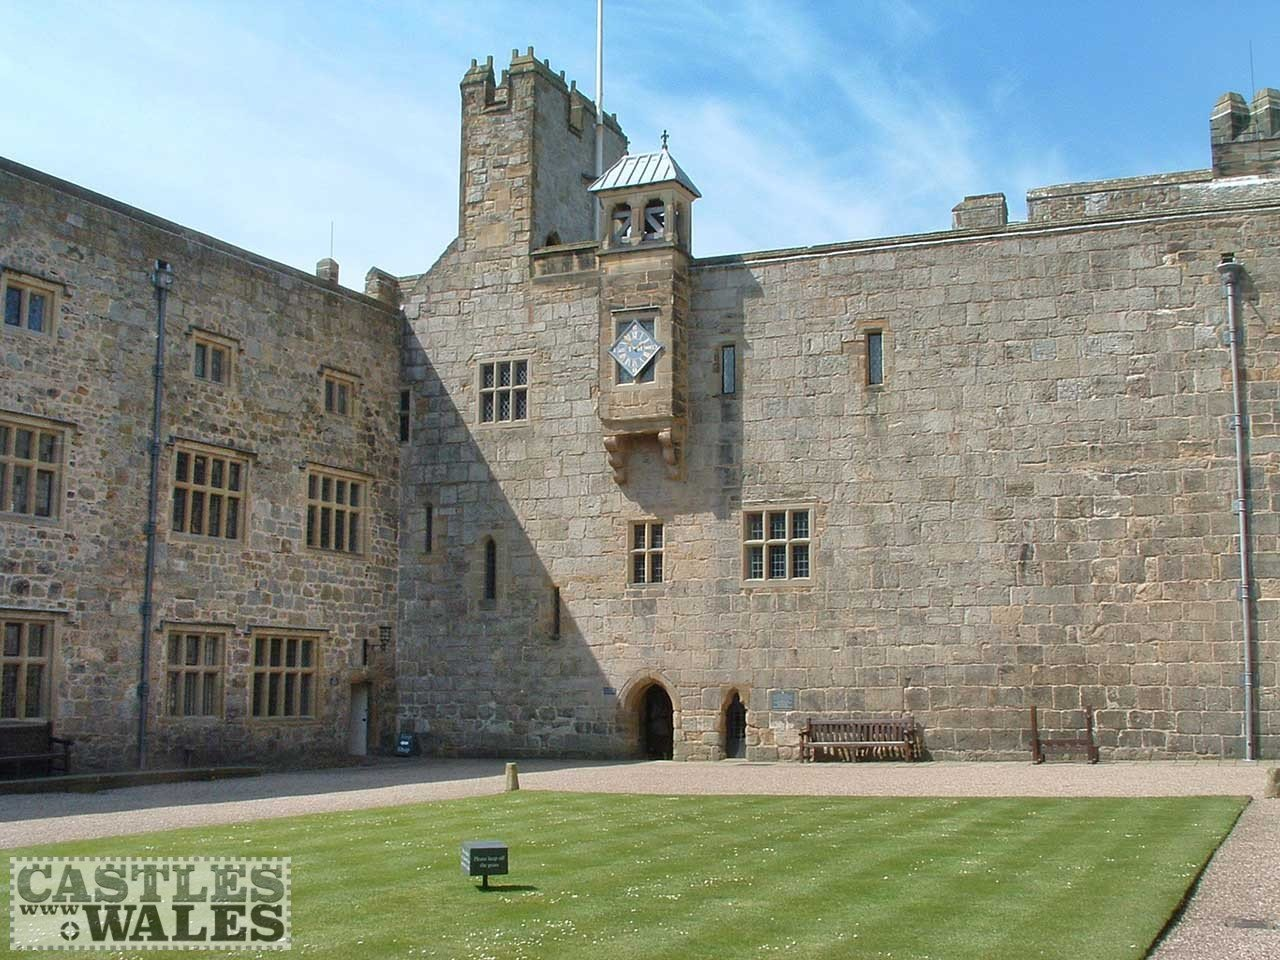 Chirk Castle Courtyard (Creative Commons Attribution-Share Alike 2.5 Generic license)